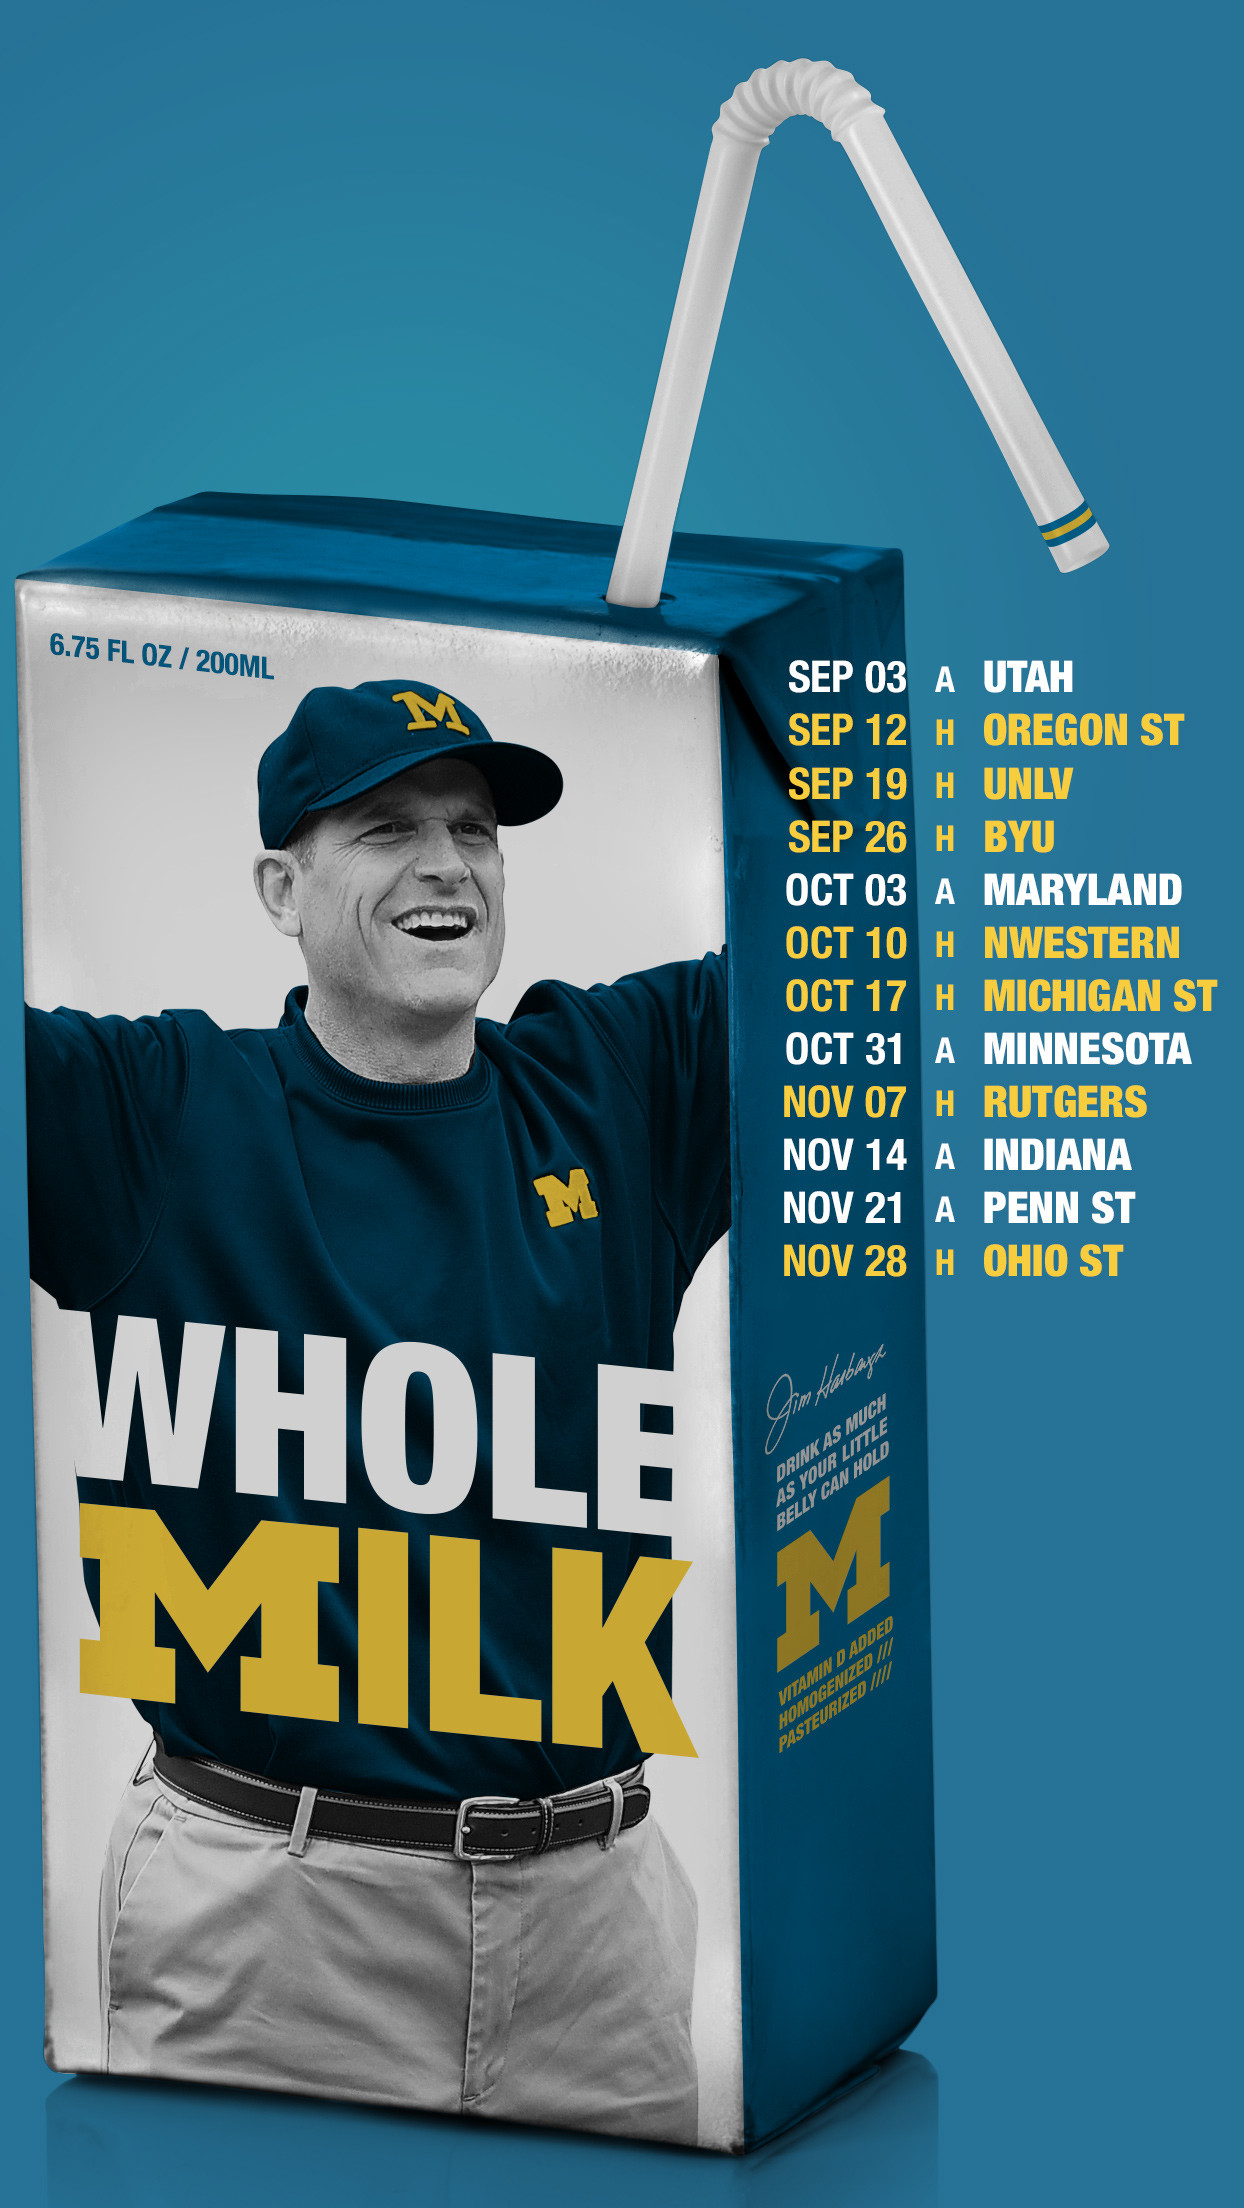 Mobile · iPad · All · Michigan Football Schedule Wallpaper …